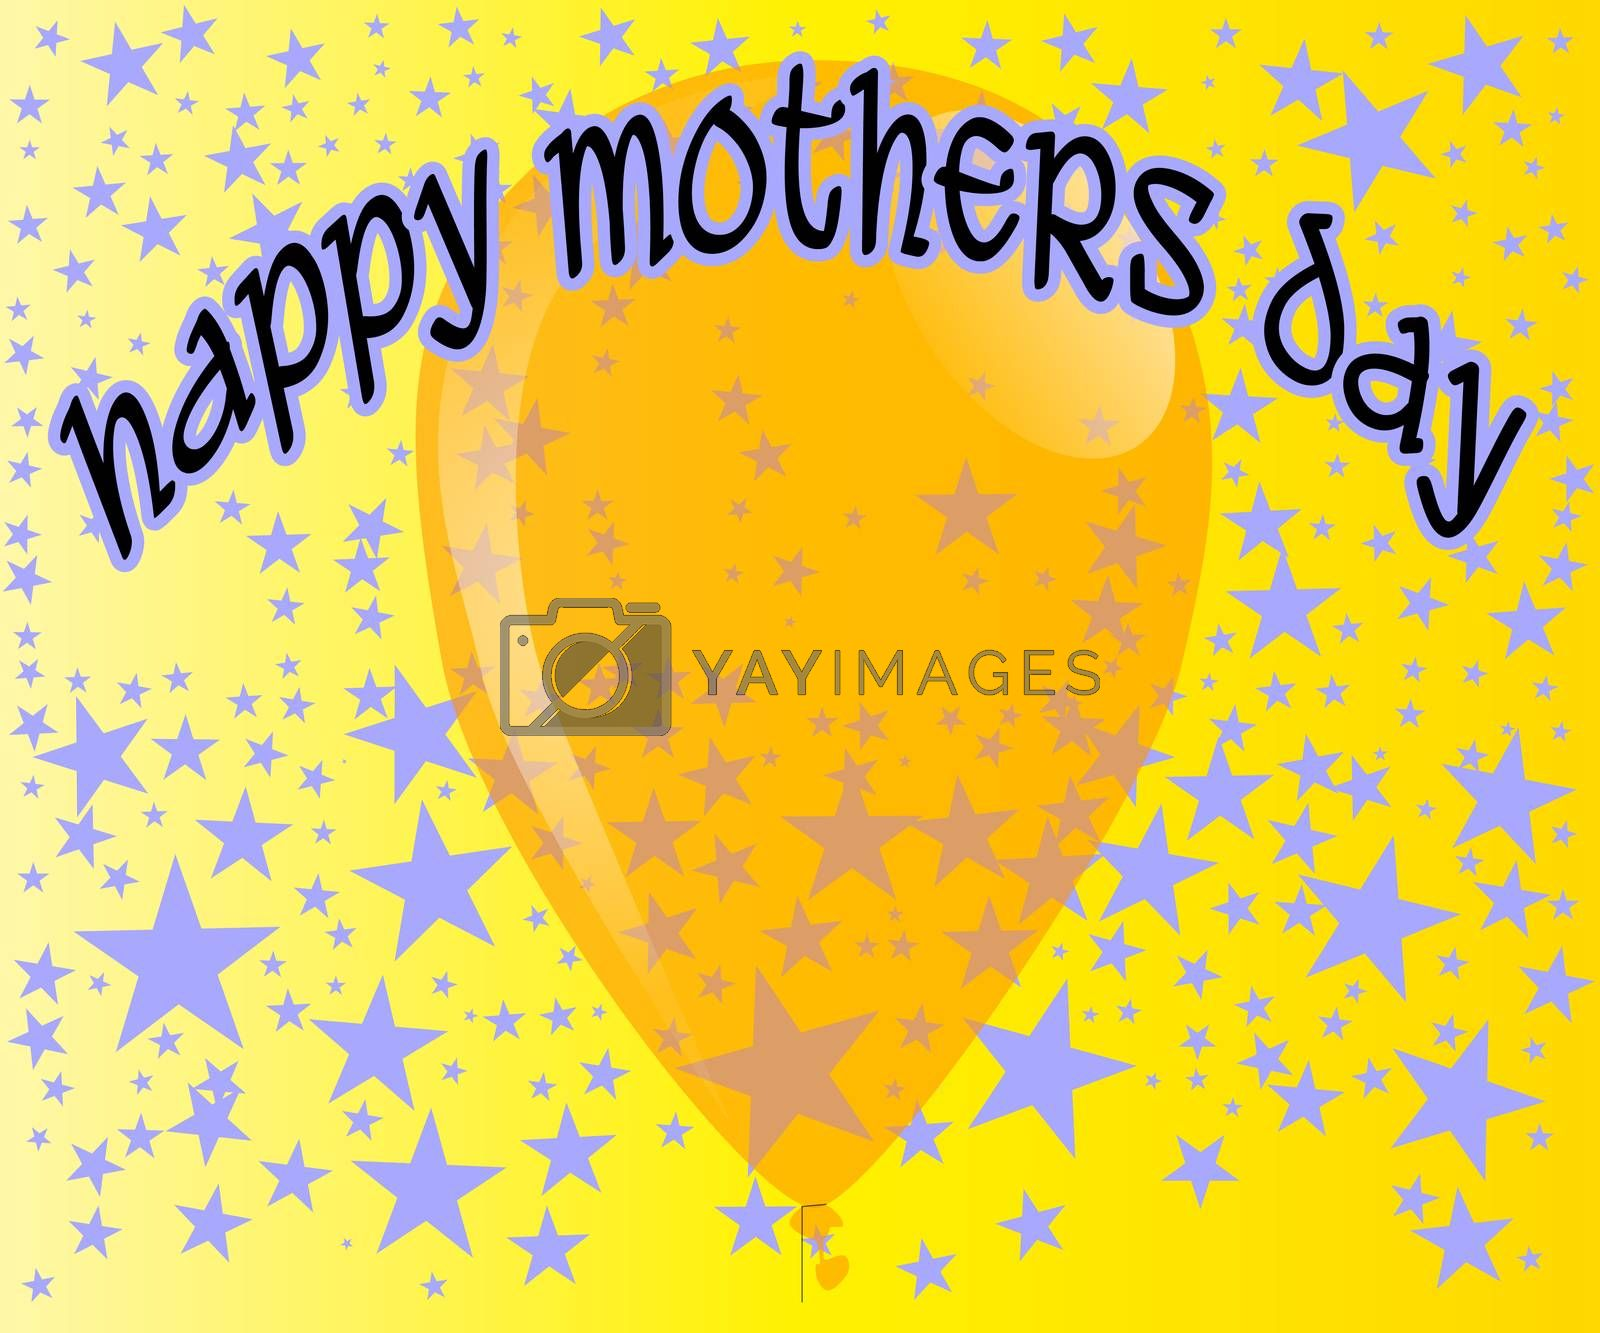 A large yellow balloon with the text 'Happy Mothers Day' with a background of fading stars